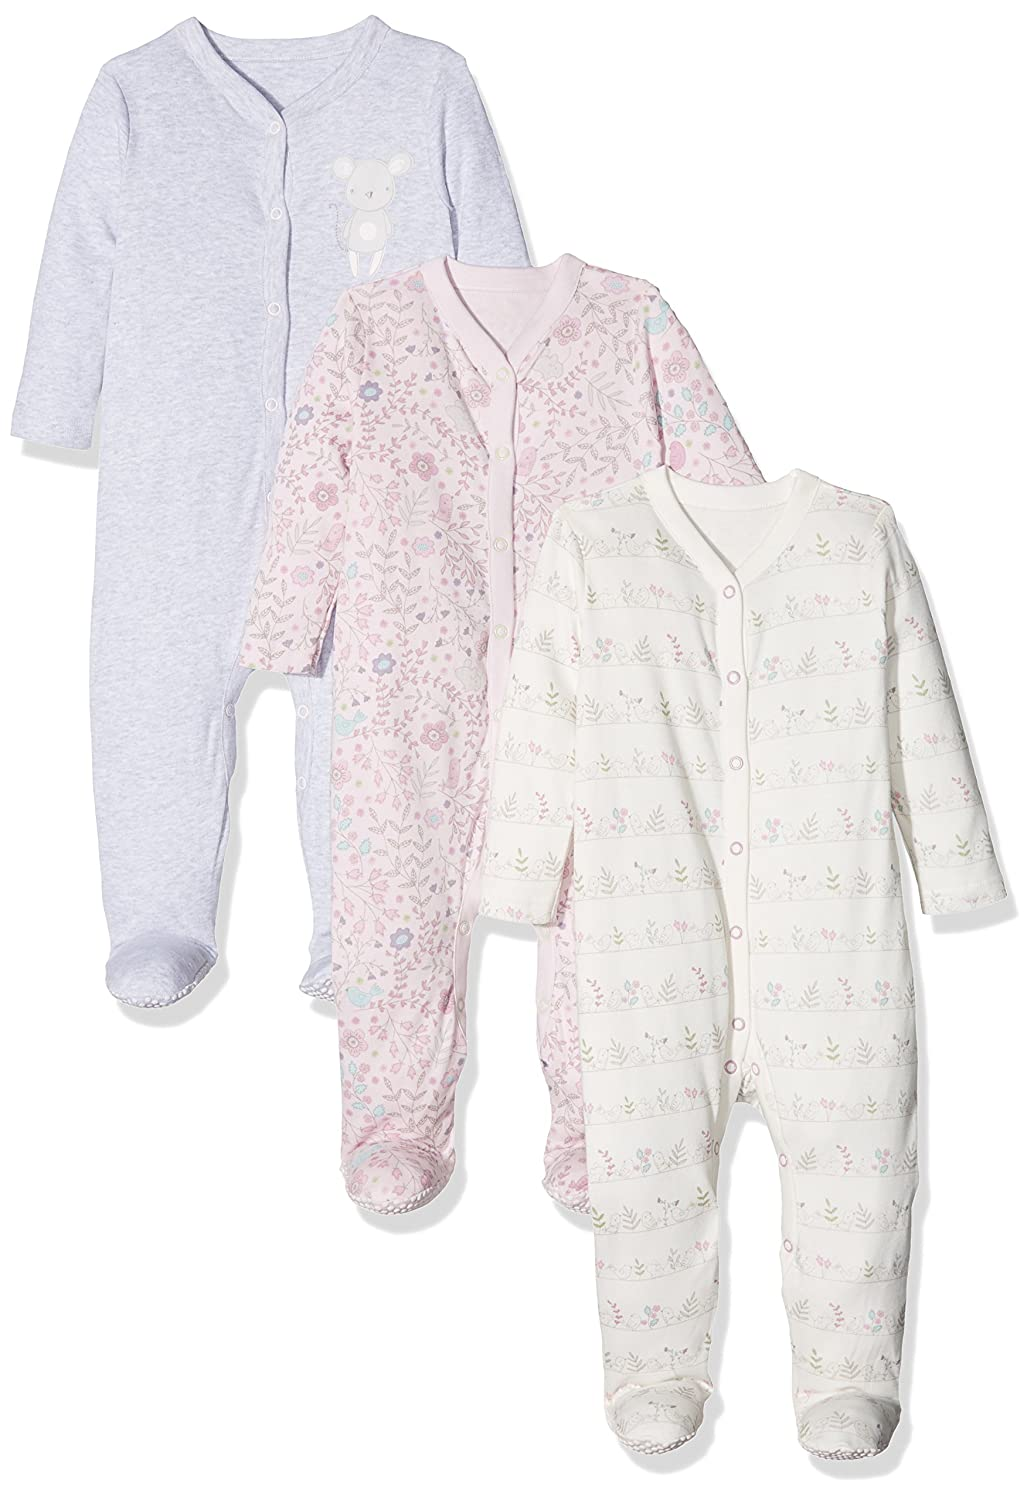 Mothercare Baby Girls' Squeak Sleepsuit PD303